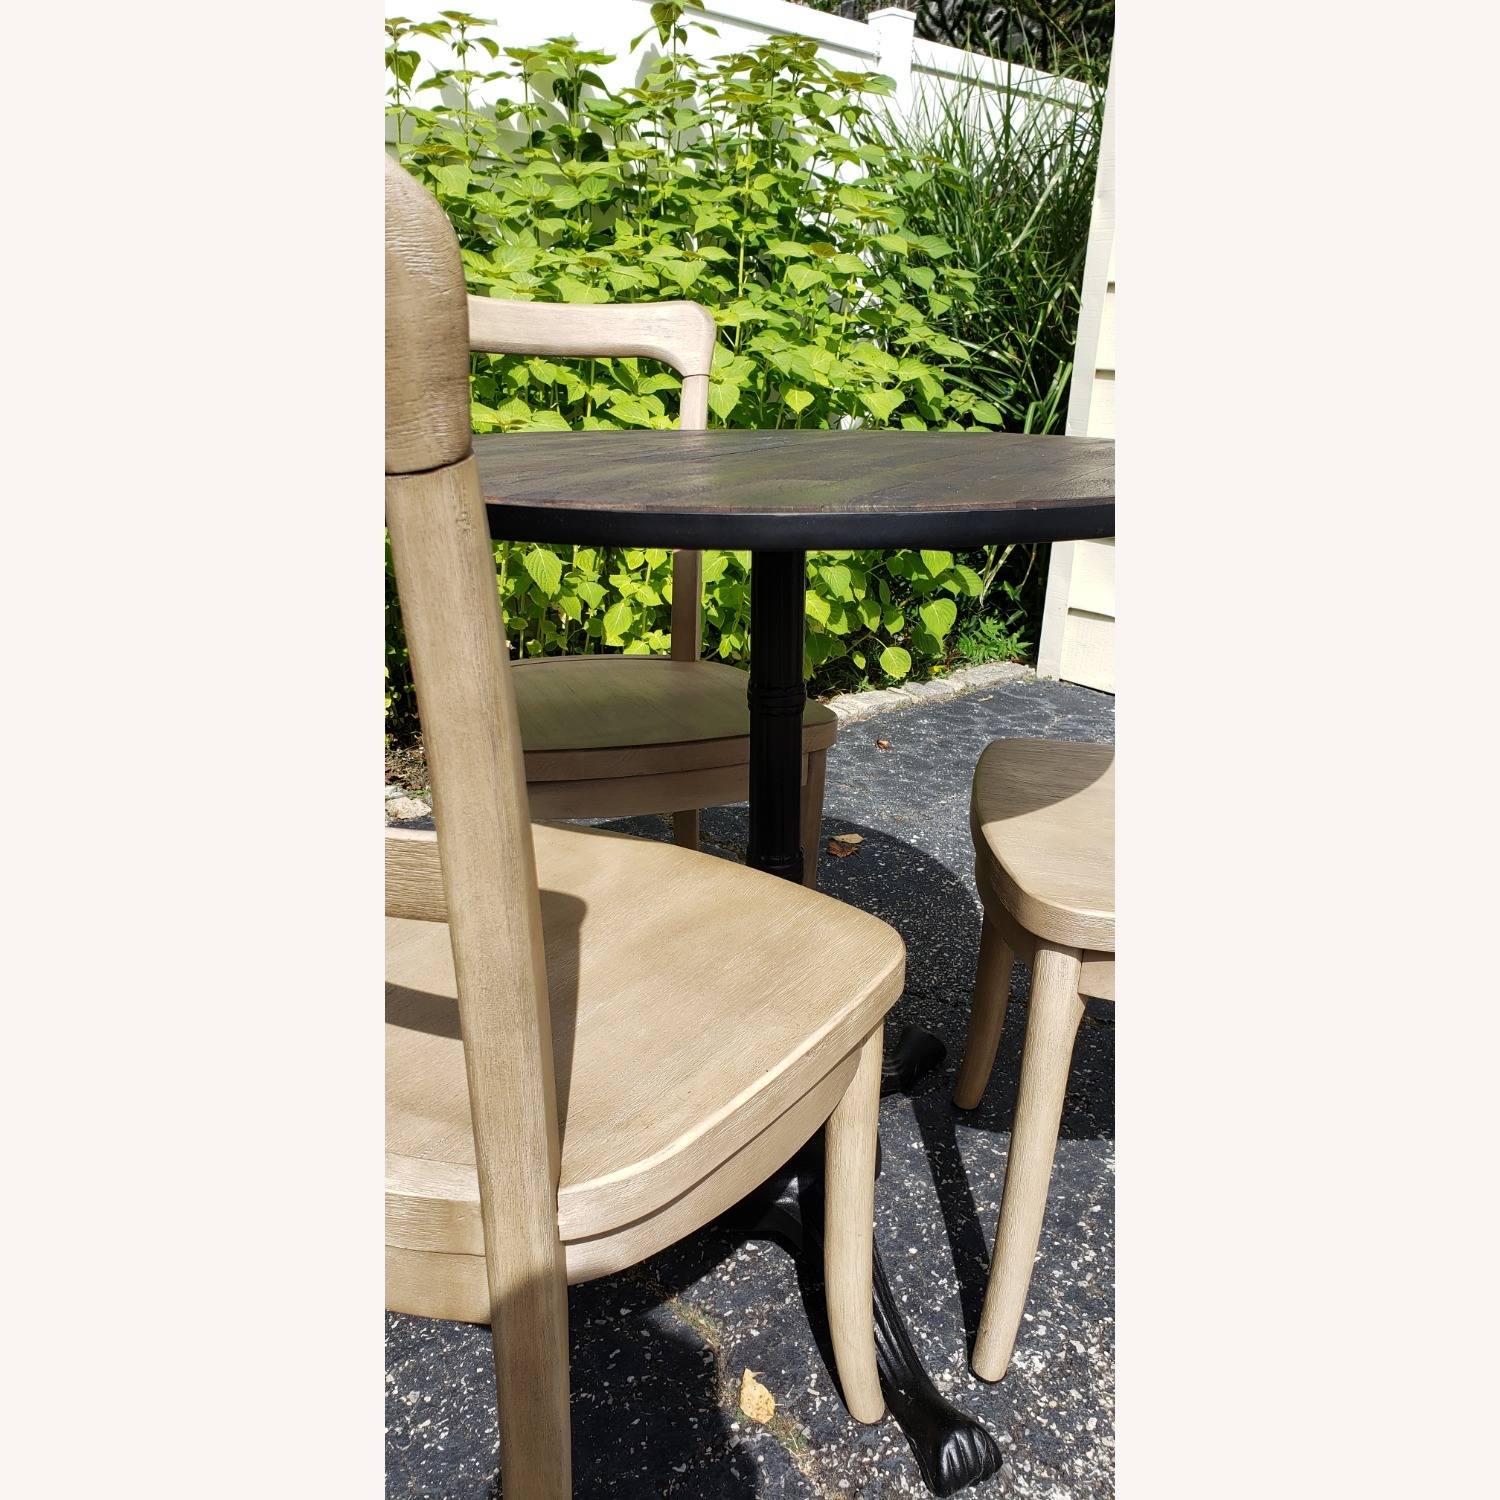 Pottery Barn Rae Bistro Dining Table Set with 3 Chairs - image-4